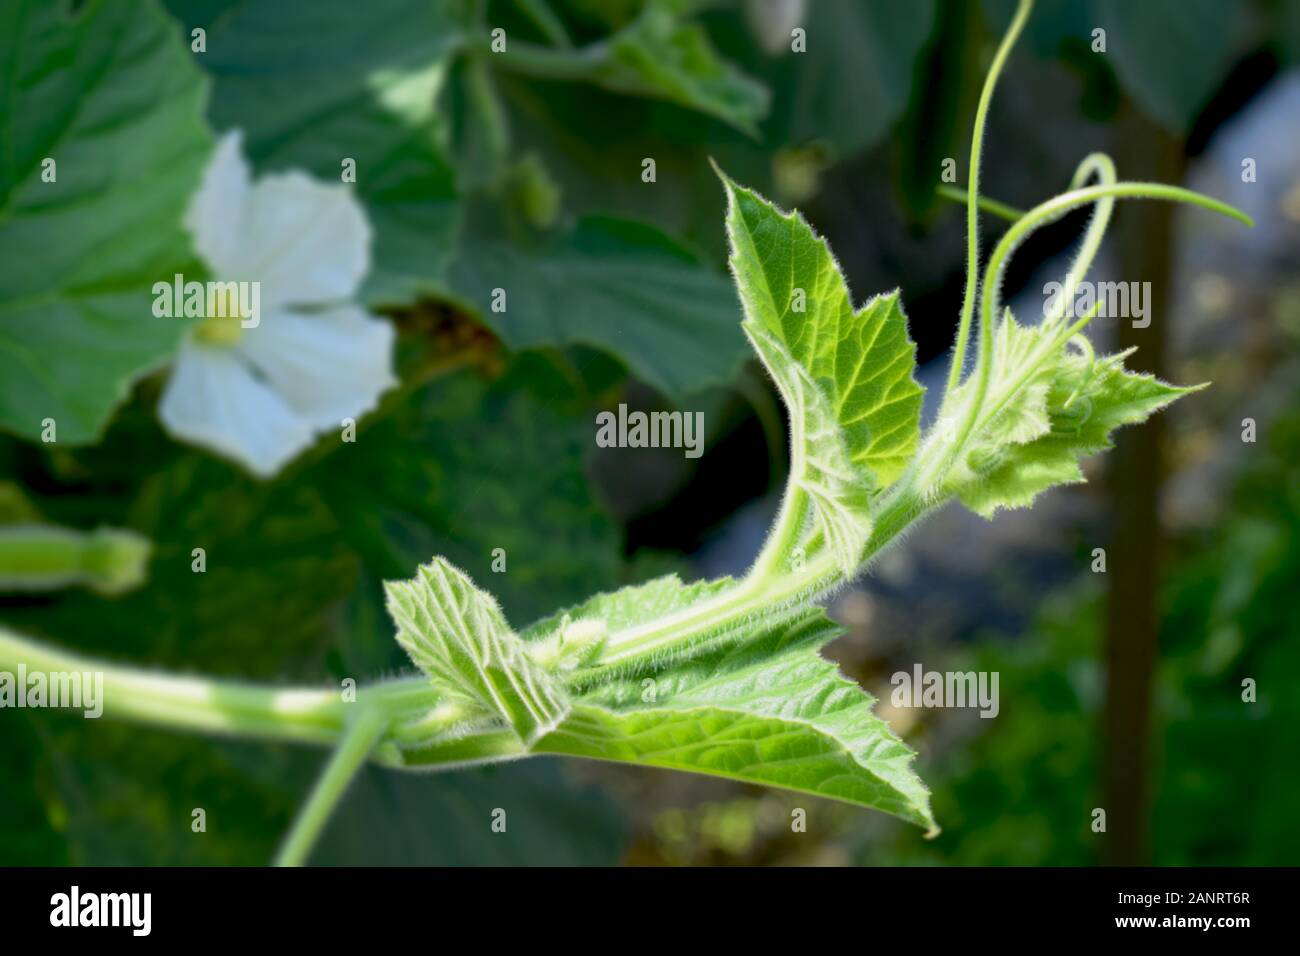 an image of a beautiful bottle gourd flower bud with a flower in the background Stock Photo